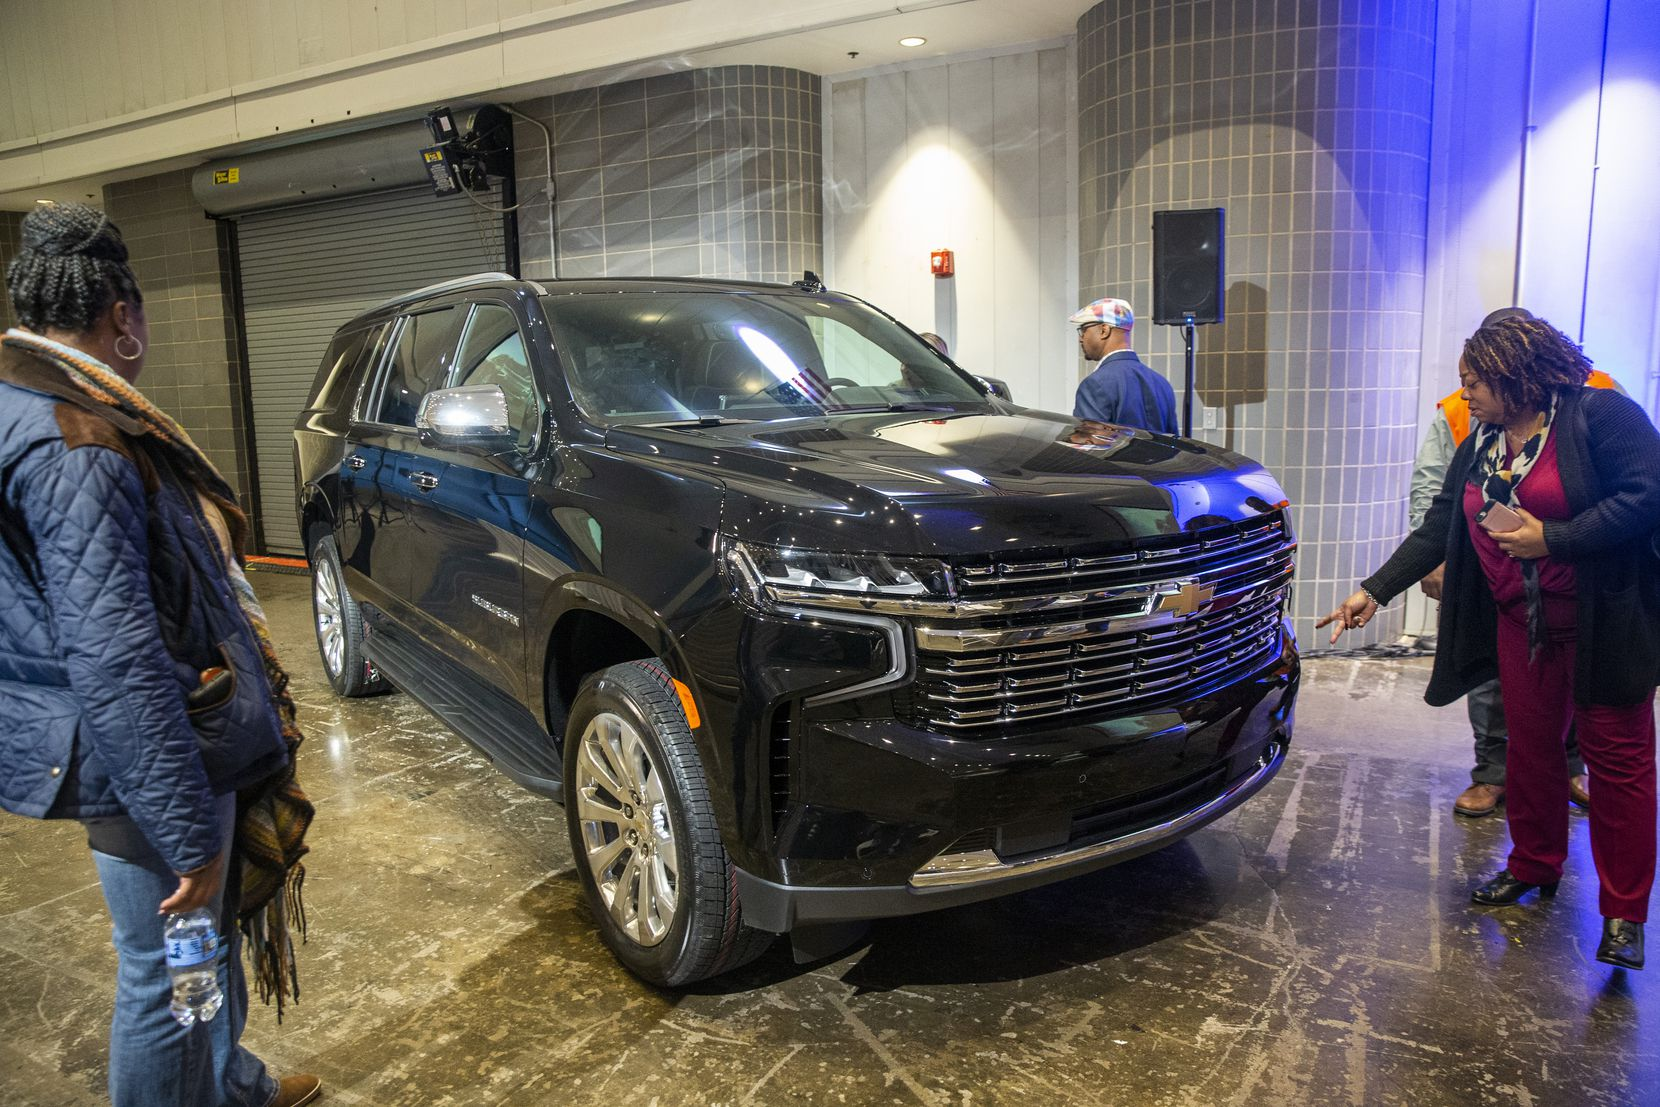 Attendees survey the new Chevrolet Suburban during the unveiling event of the next-generation models of the Chevy Suburban and Tahoe at the General Motors Assembly Plant in Arlington, Texas, on Tuesday, Dec. 10, 2019. (Lynda M. Gonzalez/The Dallas Morning News) ORG XMIT: 20048667B